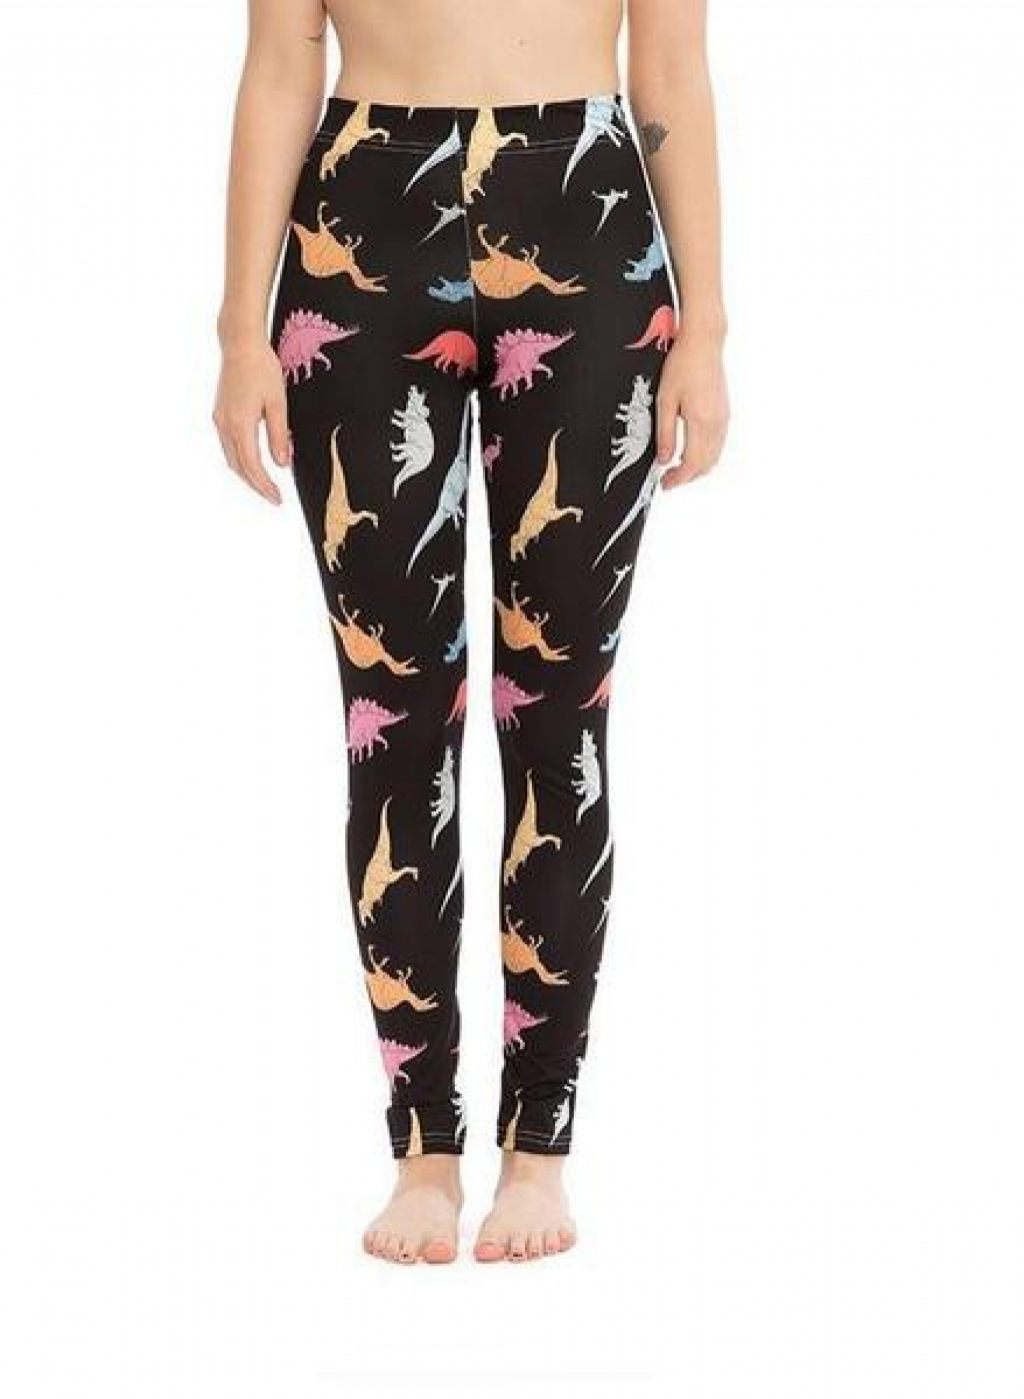 15429790630_liz-m-leggings-dinasour-leggings-3809152041048_grande.jpg